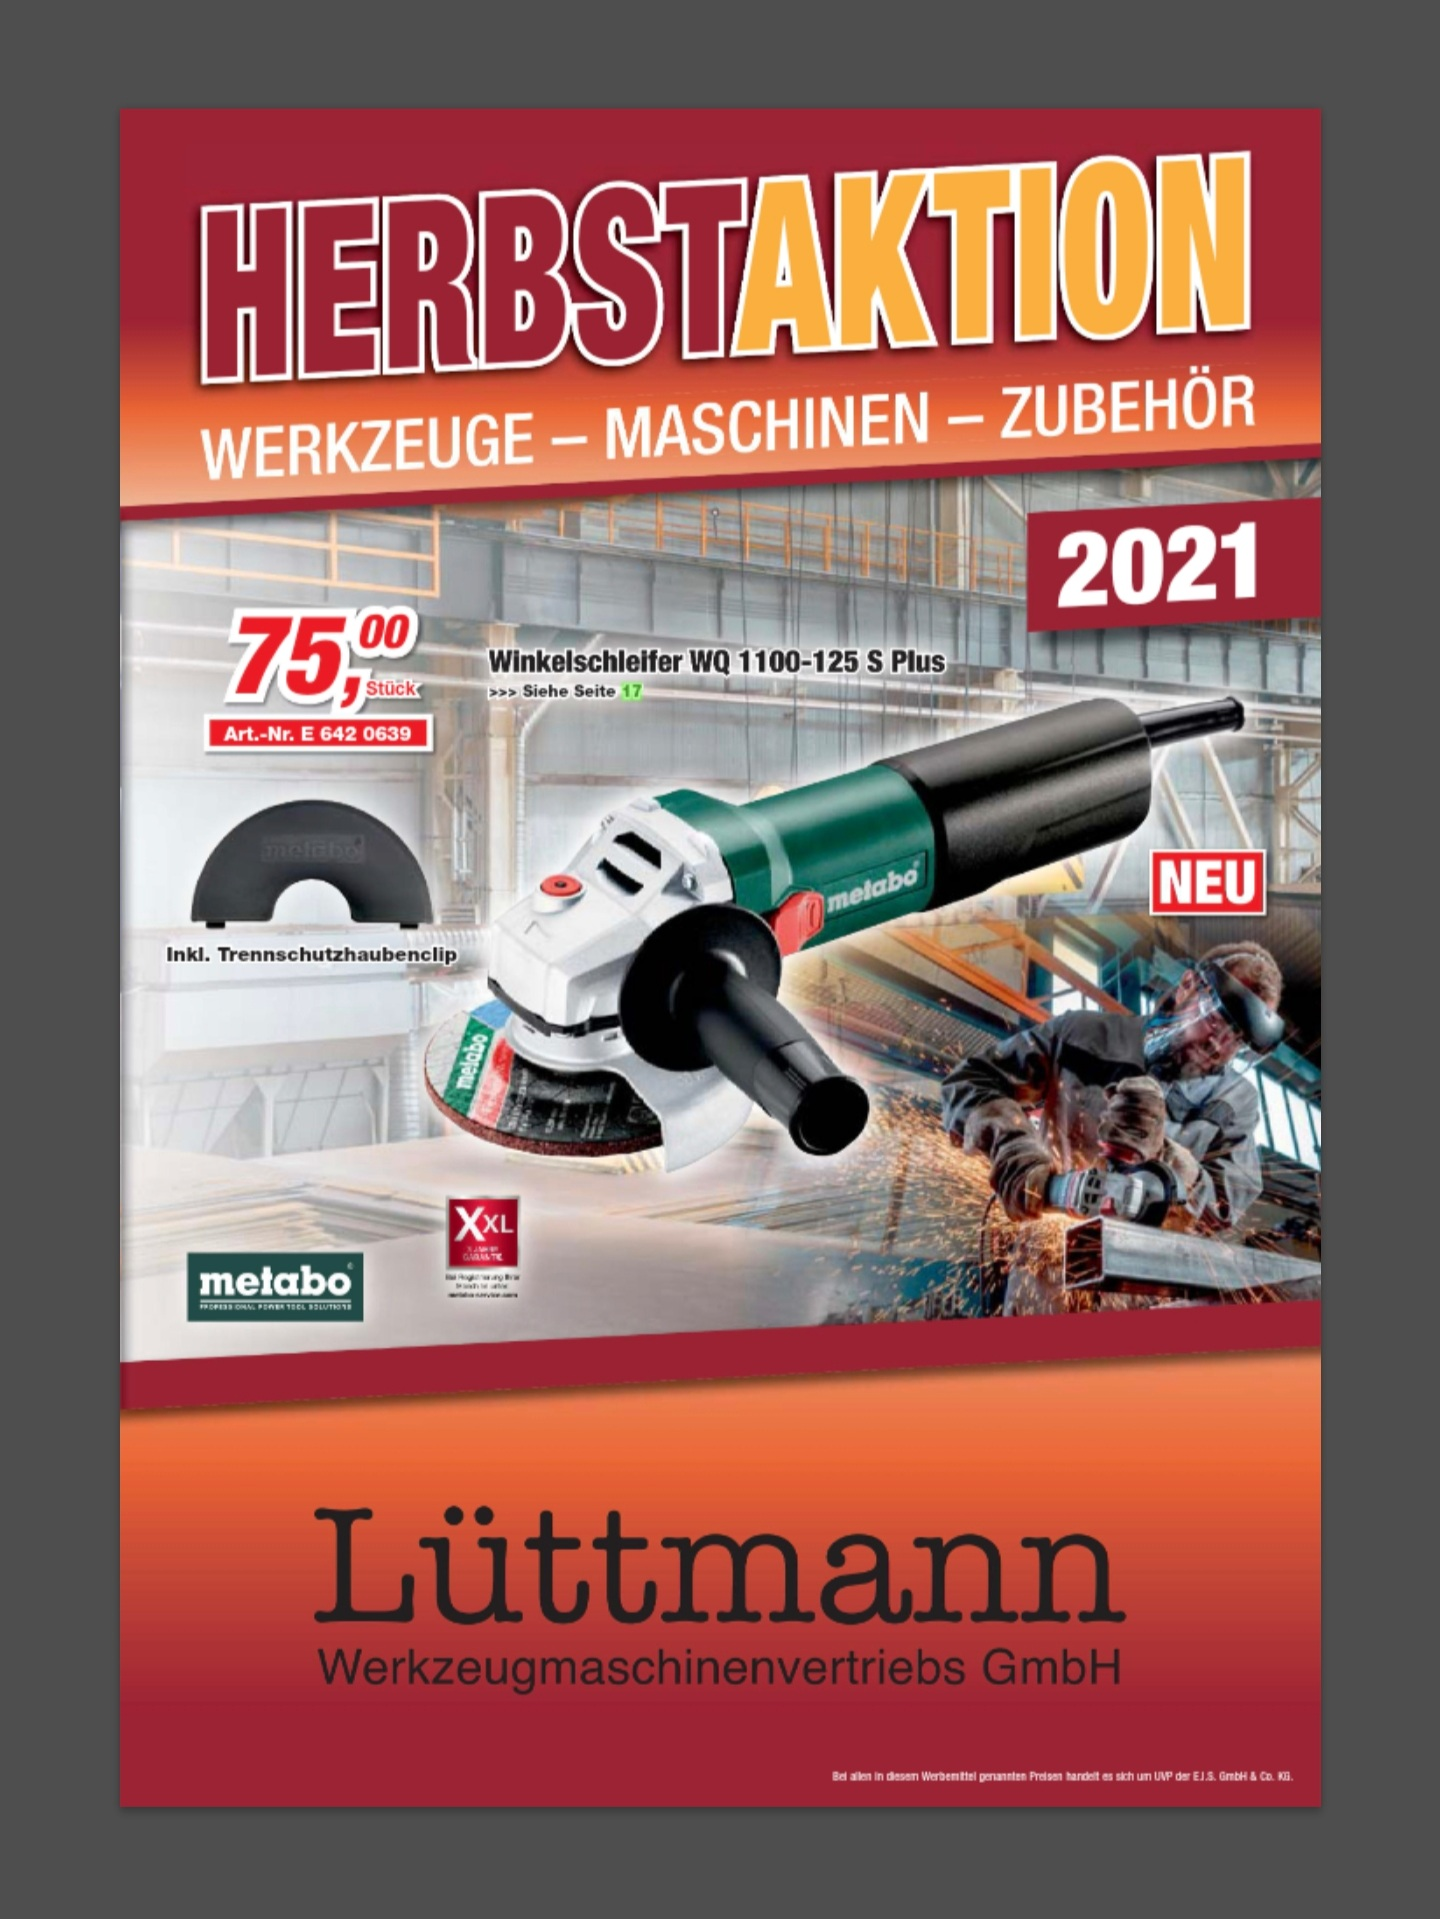 Herbstaktion 2021